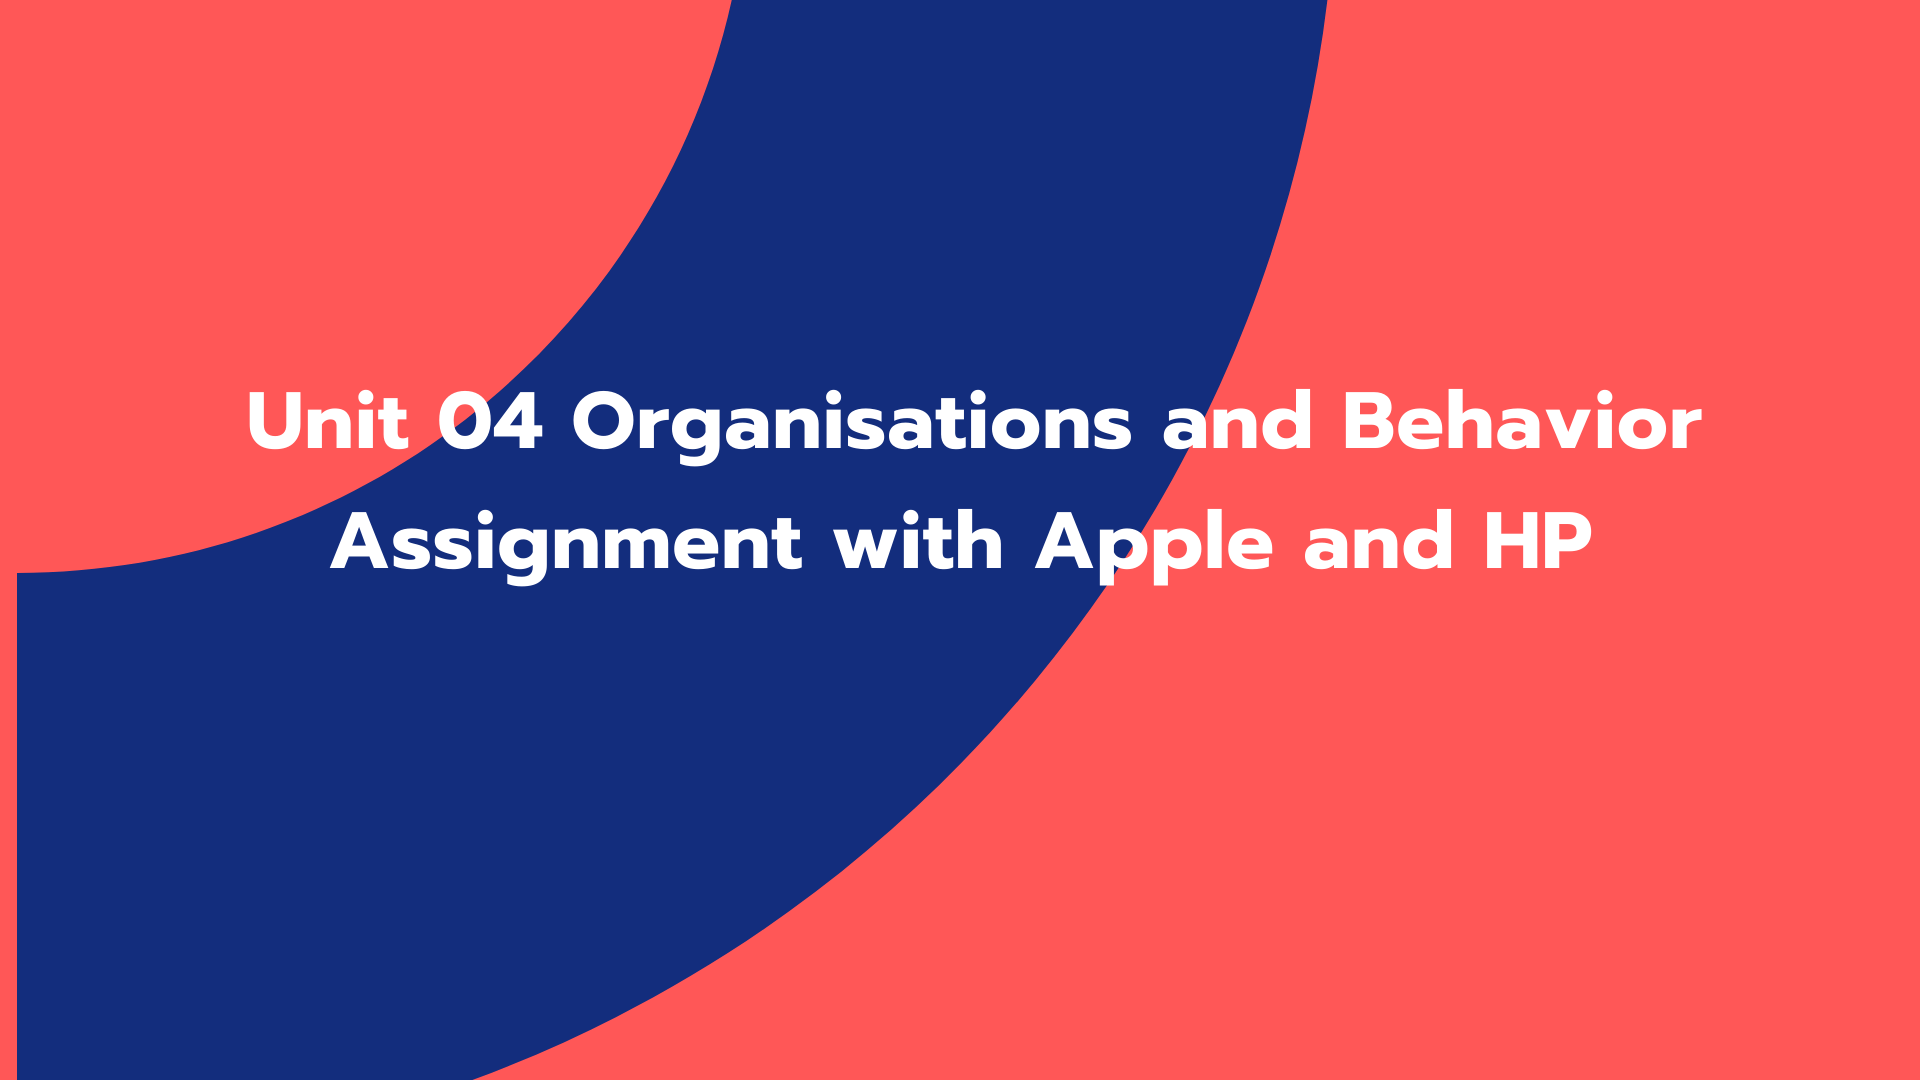 Unit 04 Organisations and Behavior Assignment with Apple and HP